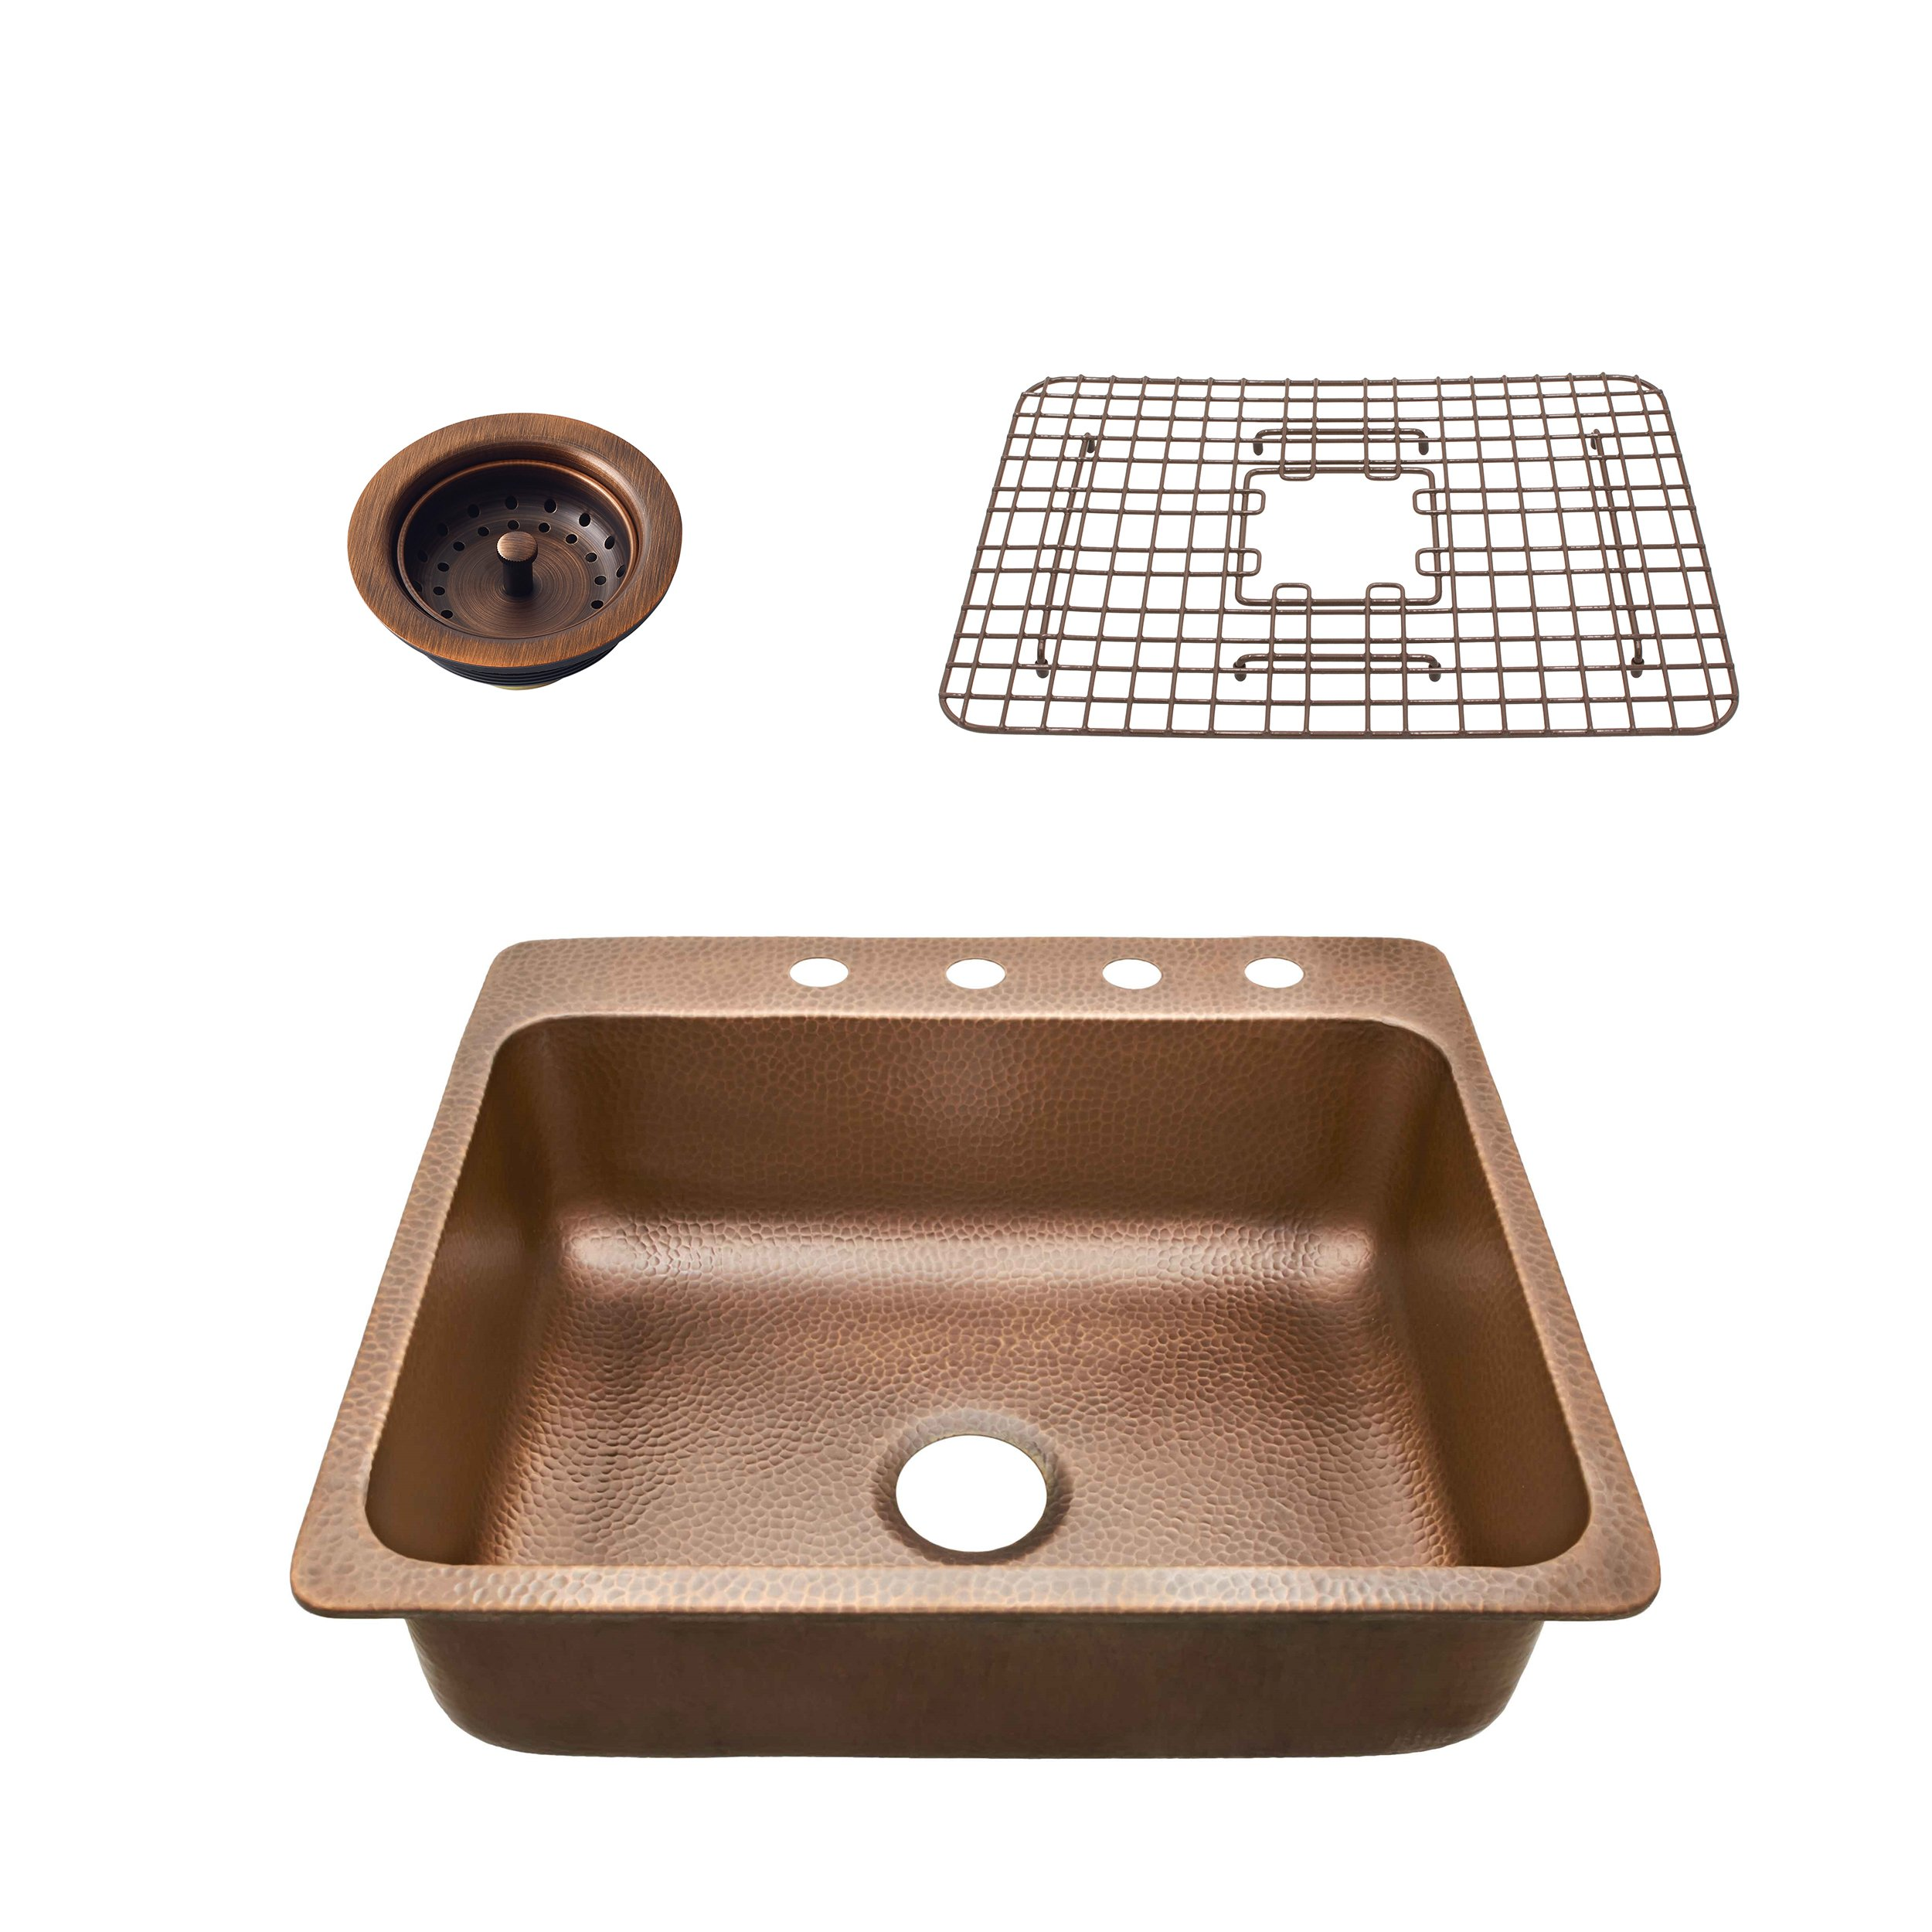 Sinkology SK102-25AC4-WG-B  Rosa 25 In. 4-Hole  Kit With Bottom Grid And Strainer Drain Copper Kitchen Sink, 25 X 22 X 8'', Antique Copper